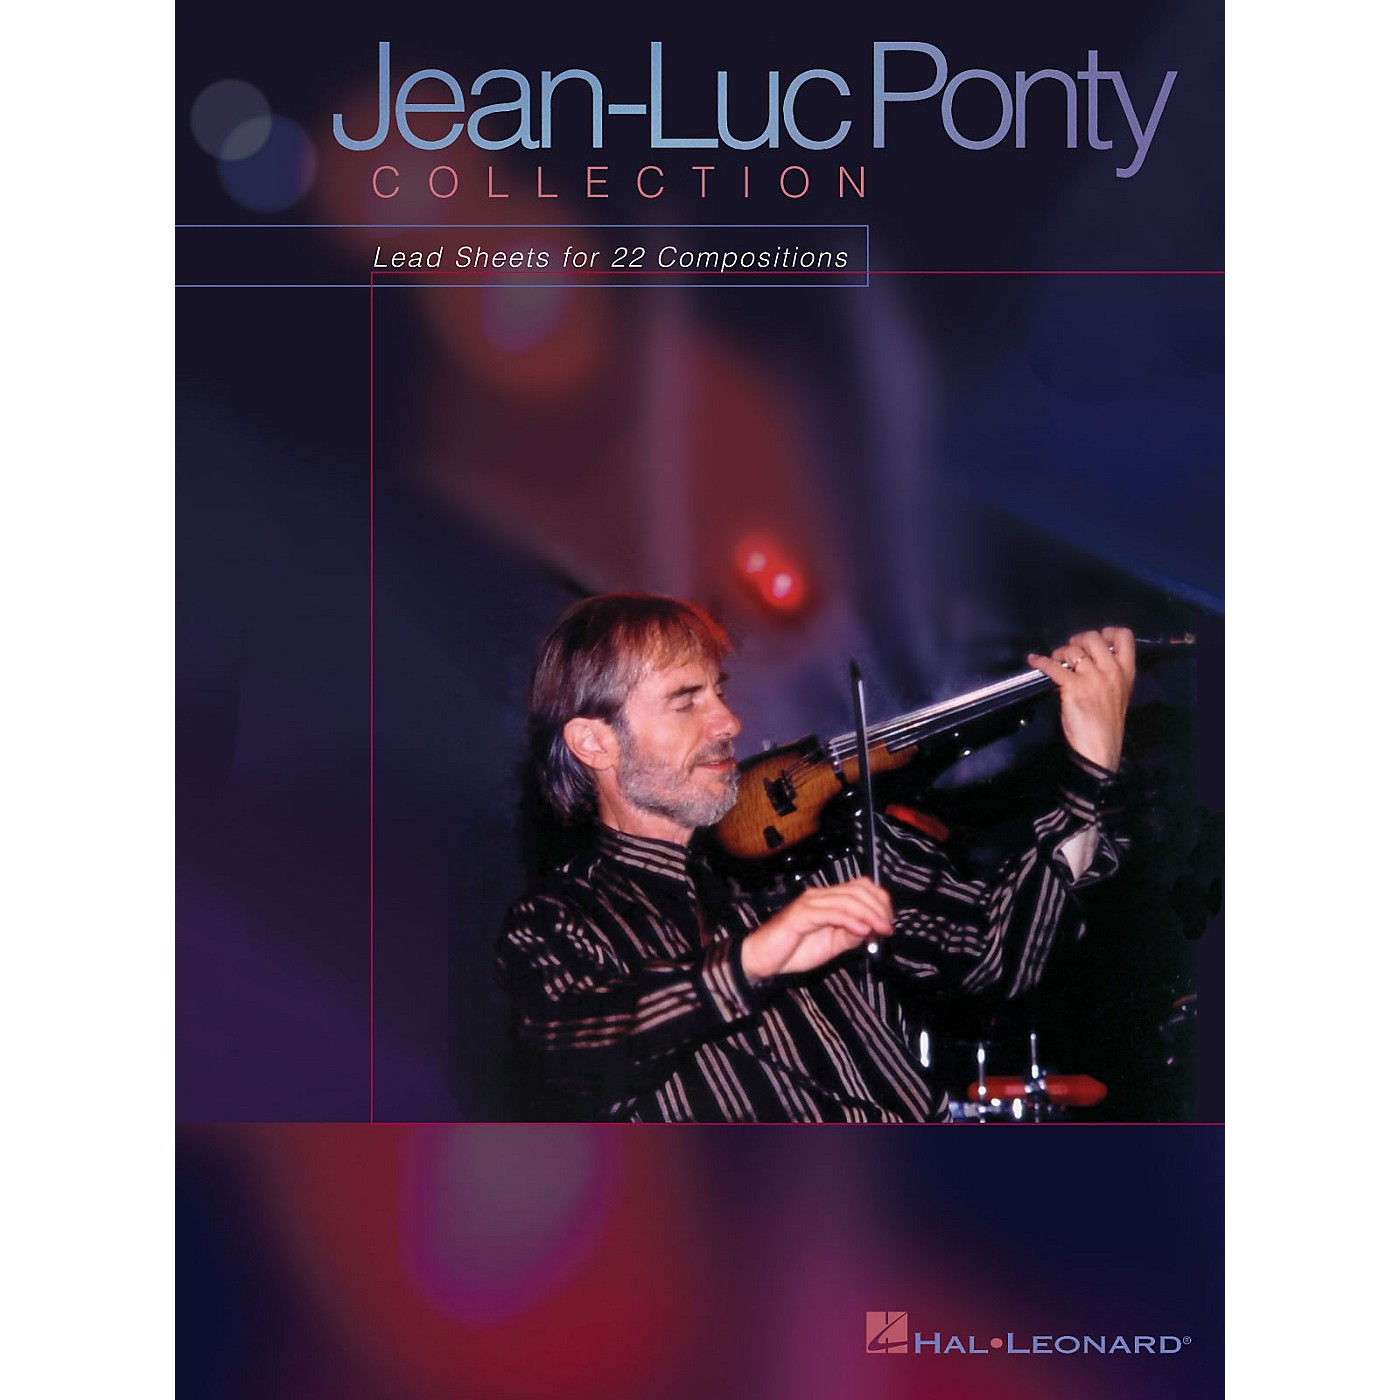 Hal Leonard Jean-Luc Ponty Collection (Lead Sheets for 22 Compositions) Artist Books Series by Jean-Luc Ponty thumbnail